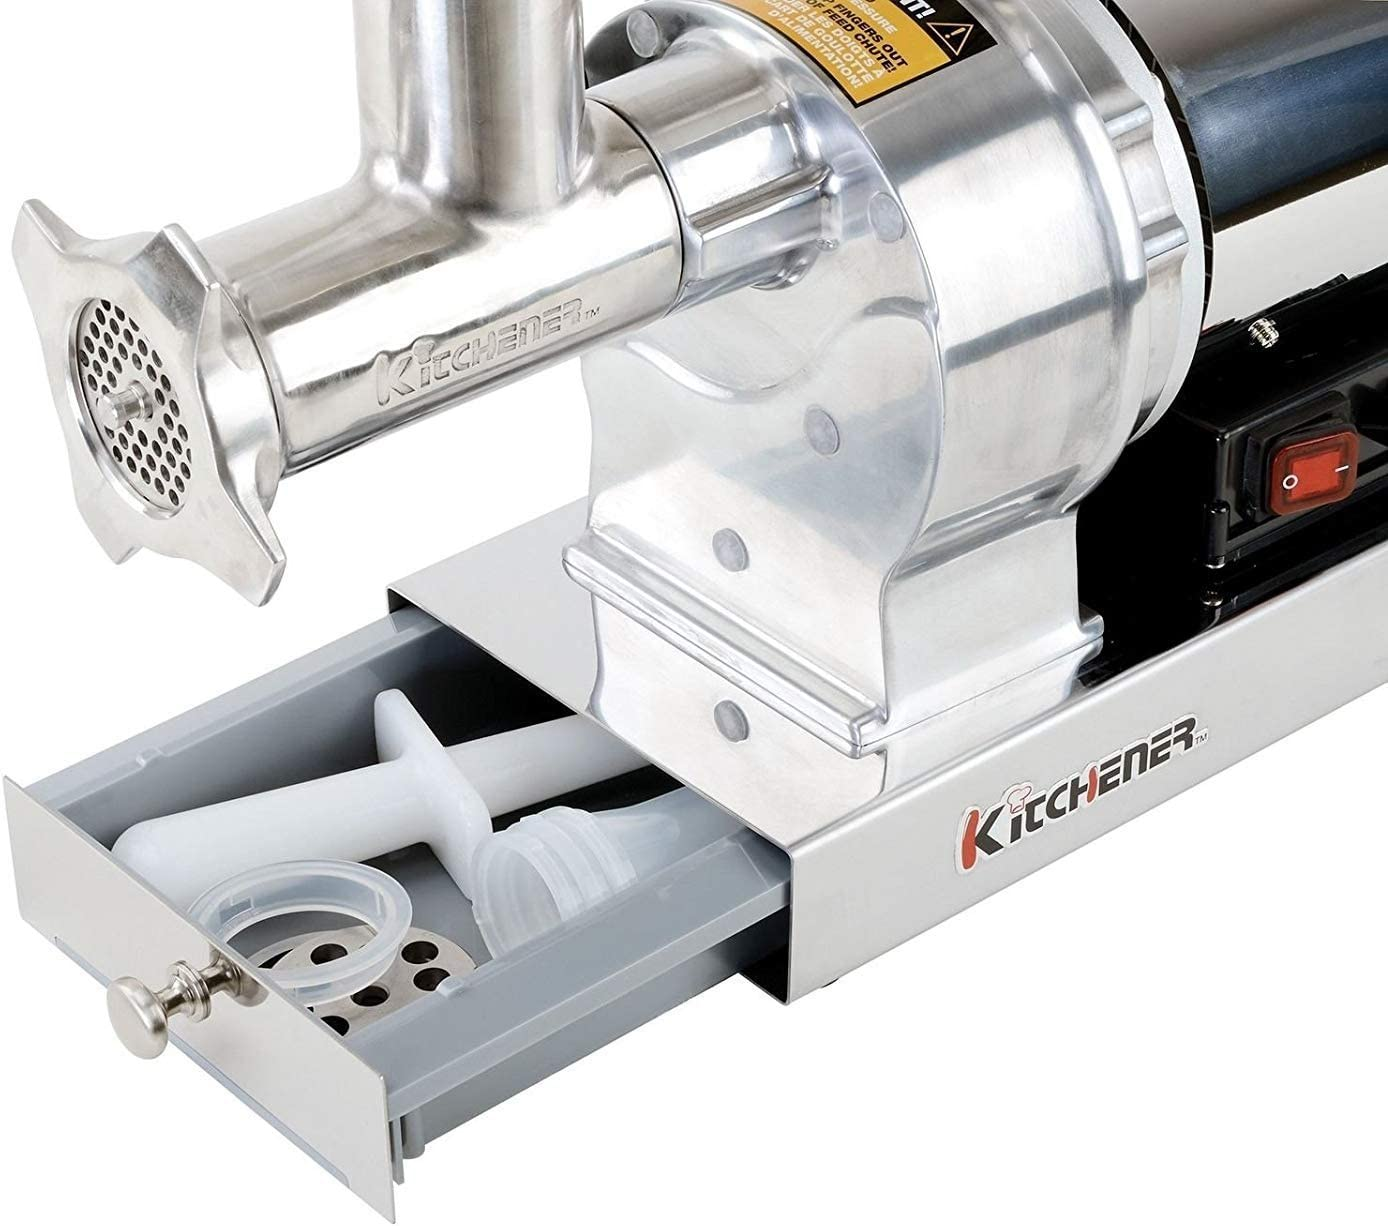 Heavy Duty Commercial Grade Electric Stainless Steel High HP Meat Grinder Kitchener #8 480lbs//Hour